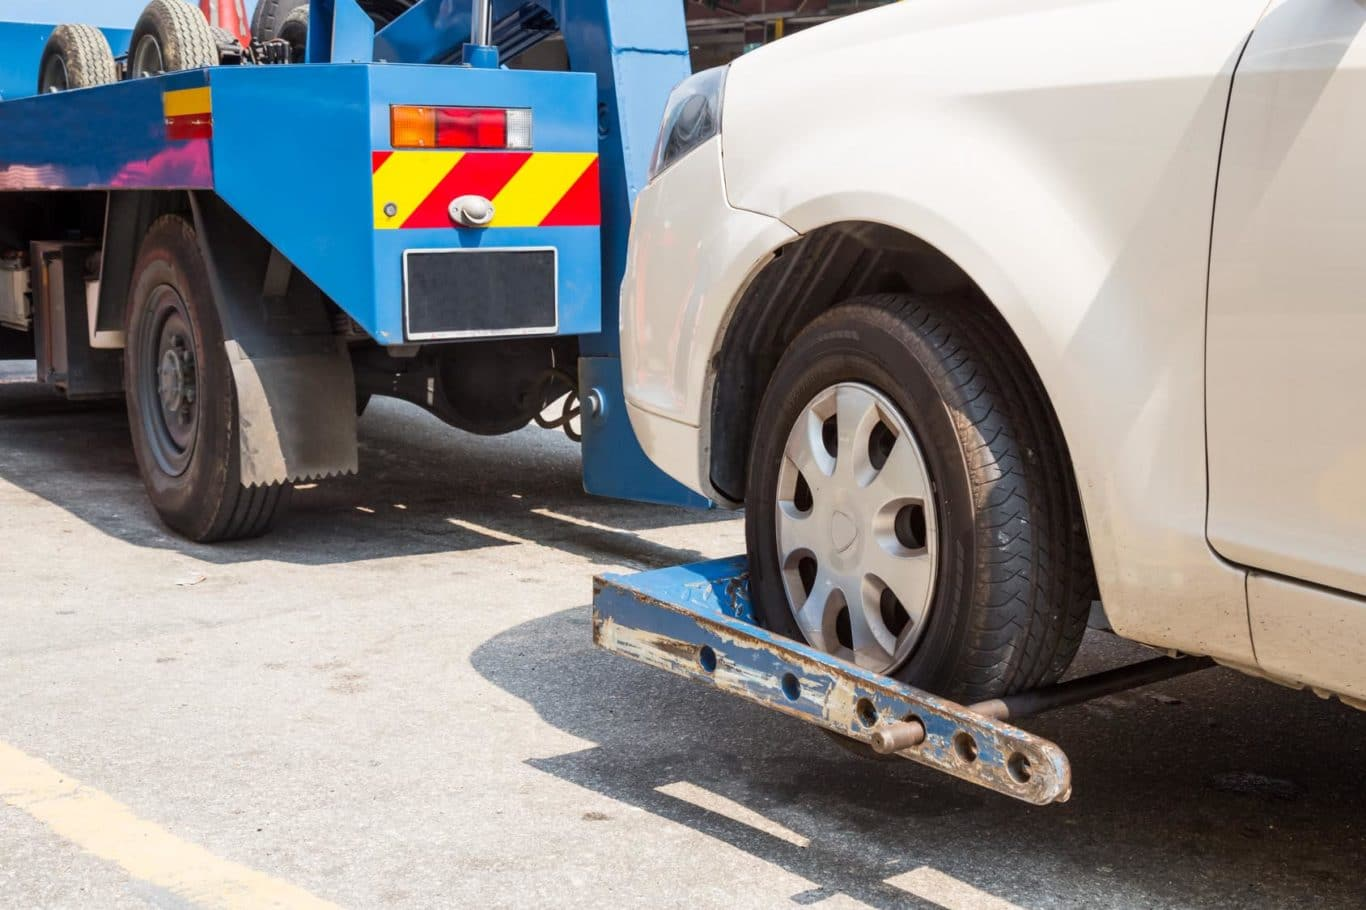 Greystones expert Towing services